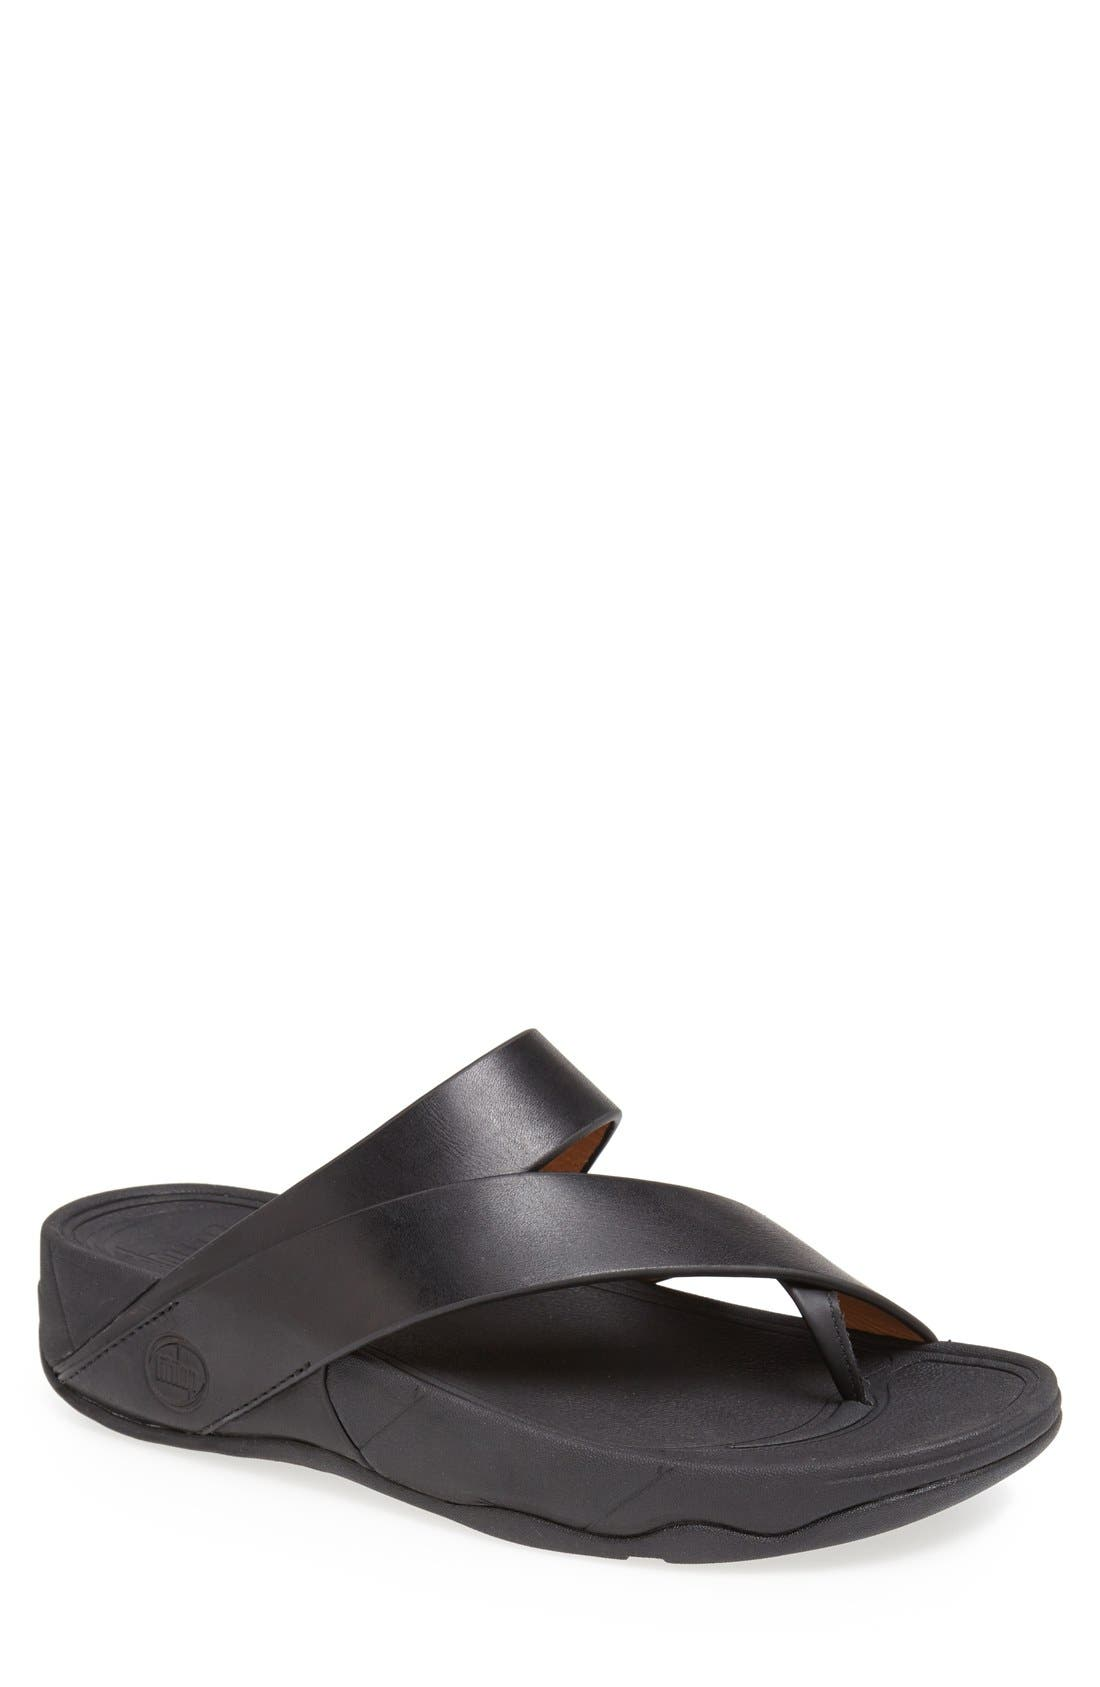 Alternate Image 1 Selected - FitFlop 'Sling' Leather Sandal (Men)